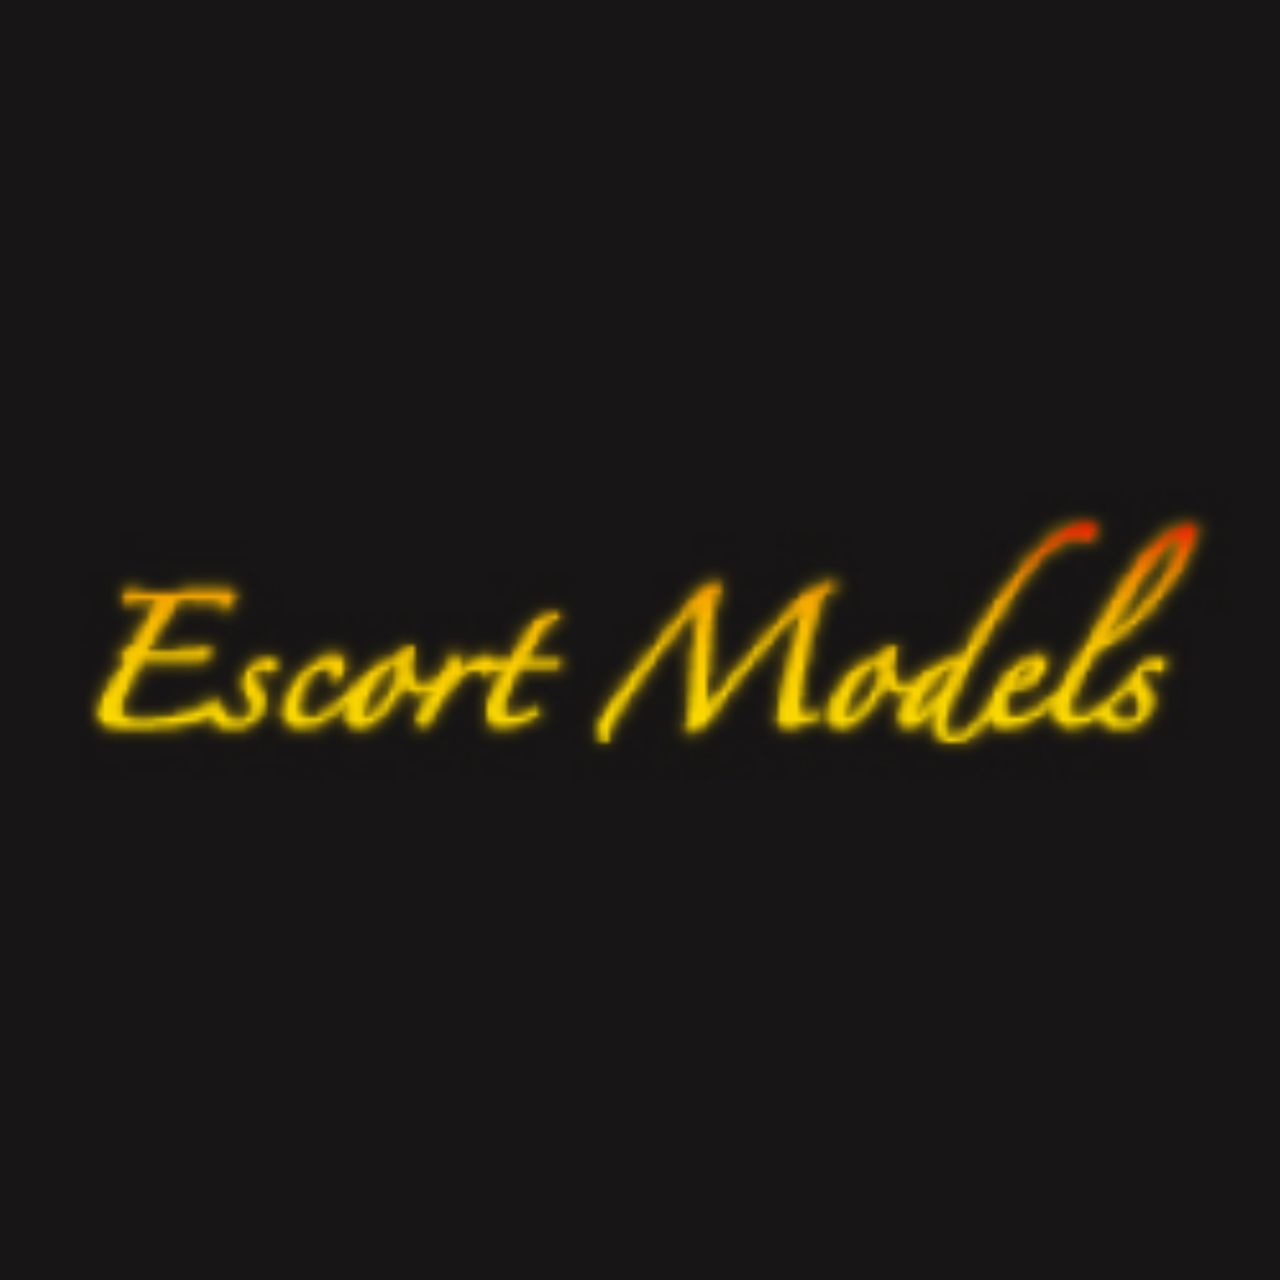 London Escort Models